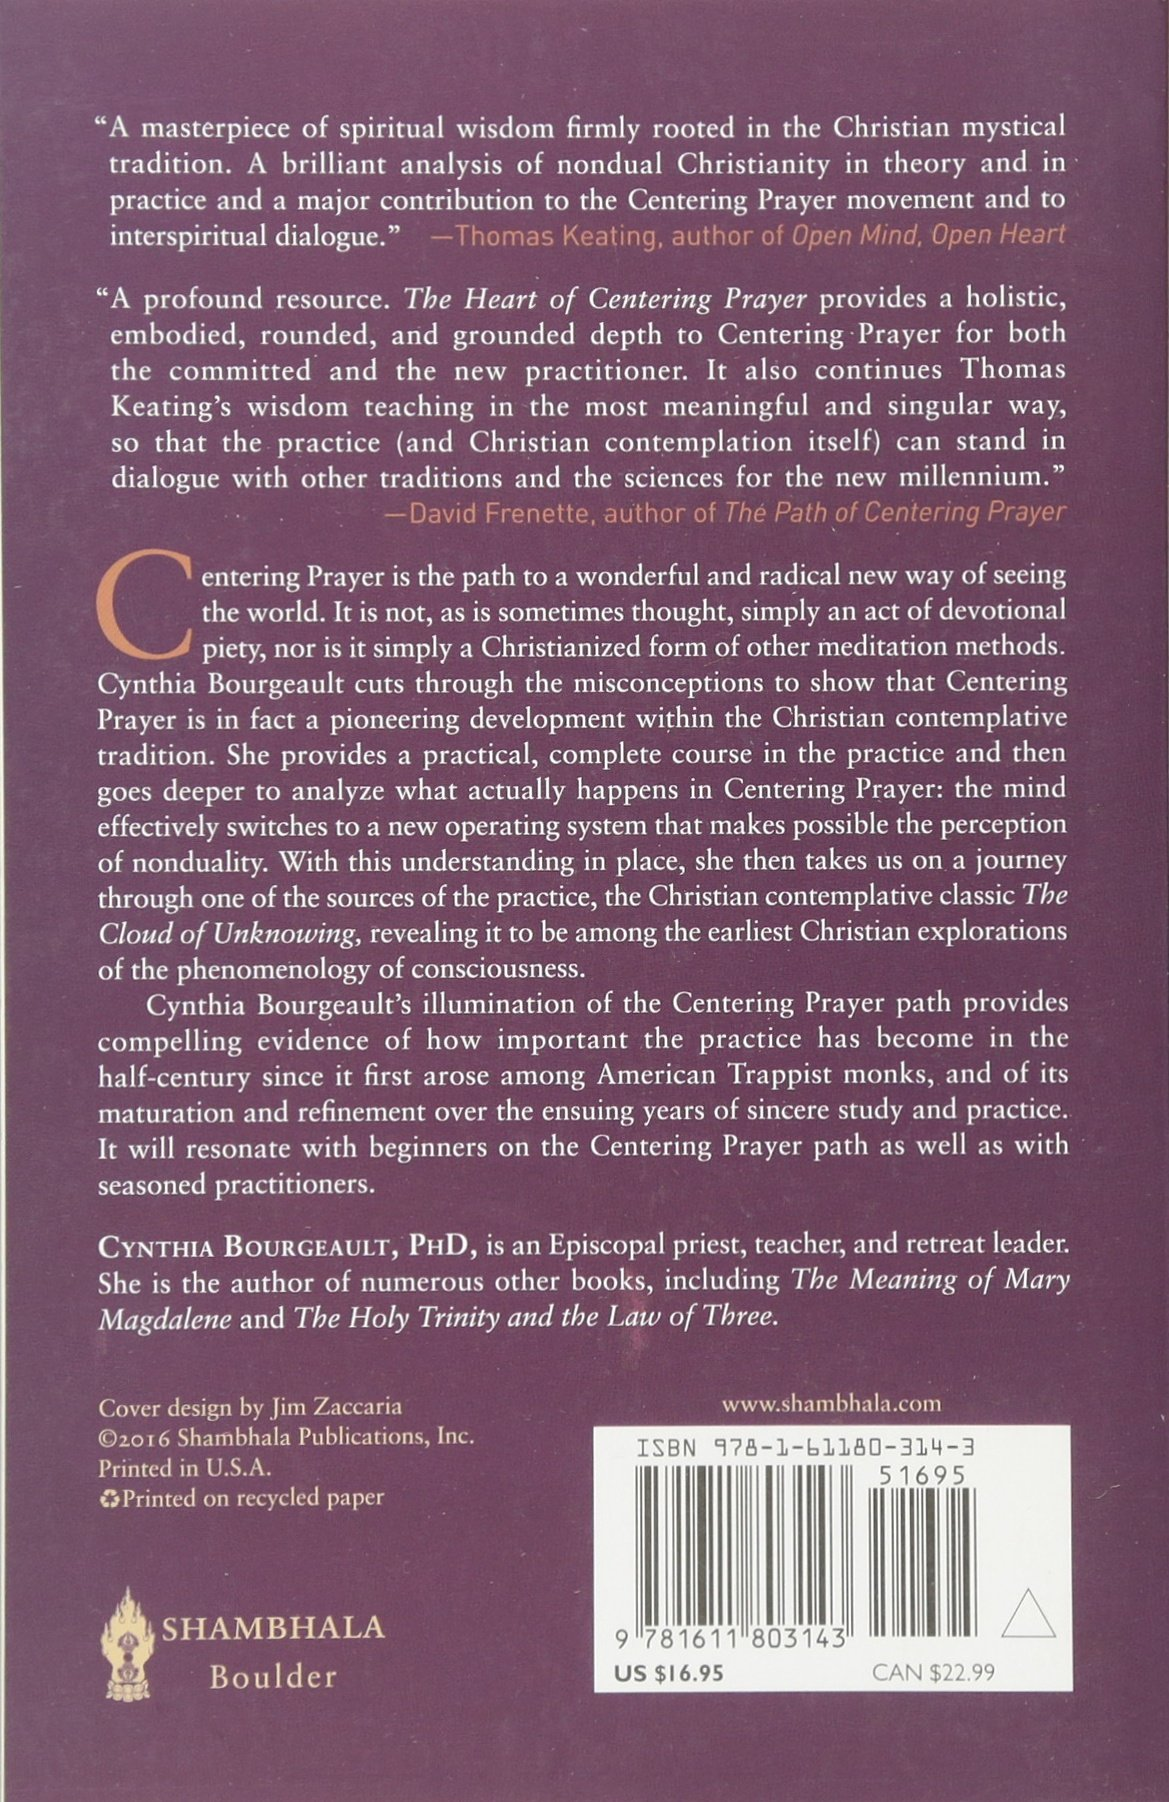 The heart of centering prayer nondual christianity in theory and the heart of centering prayer nondual christianity in theory and practice cynthia bourgeault 9781611803143 amazon books fandeluxe Image collections